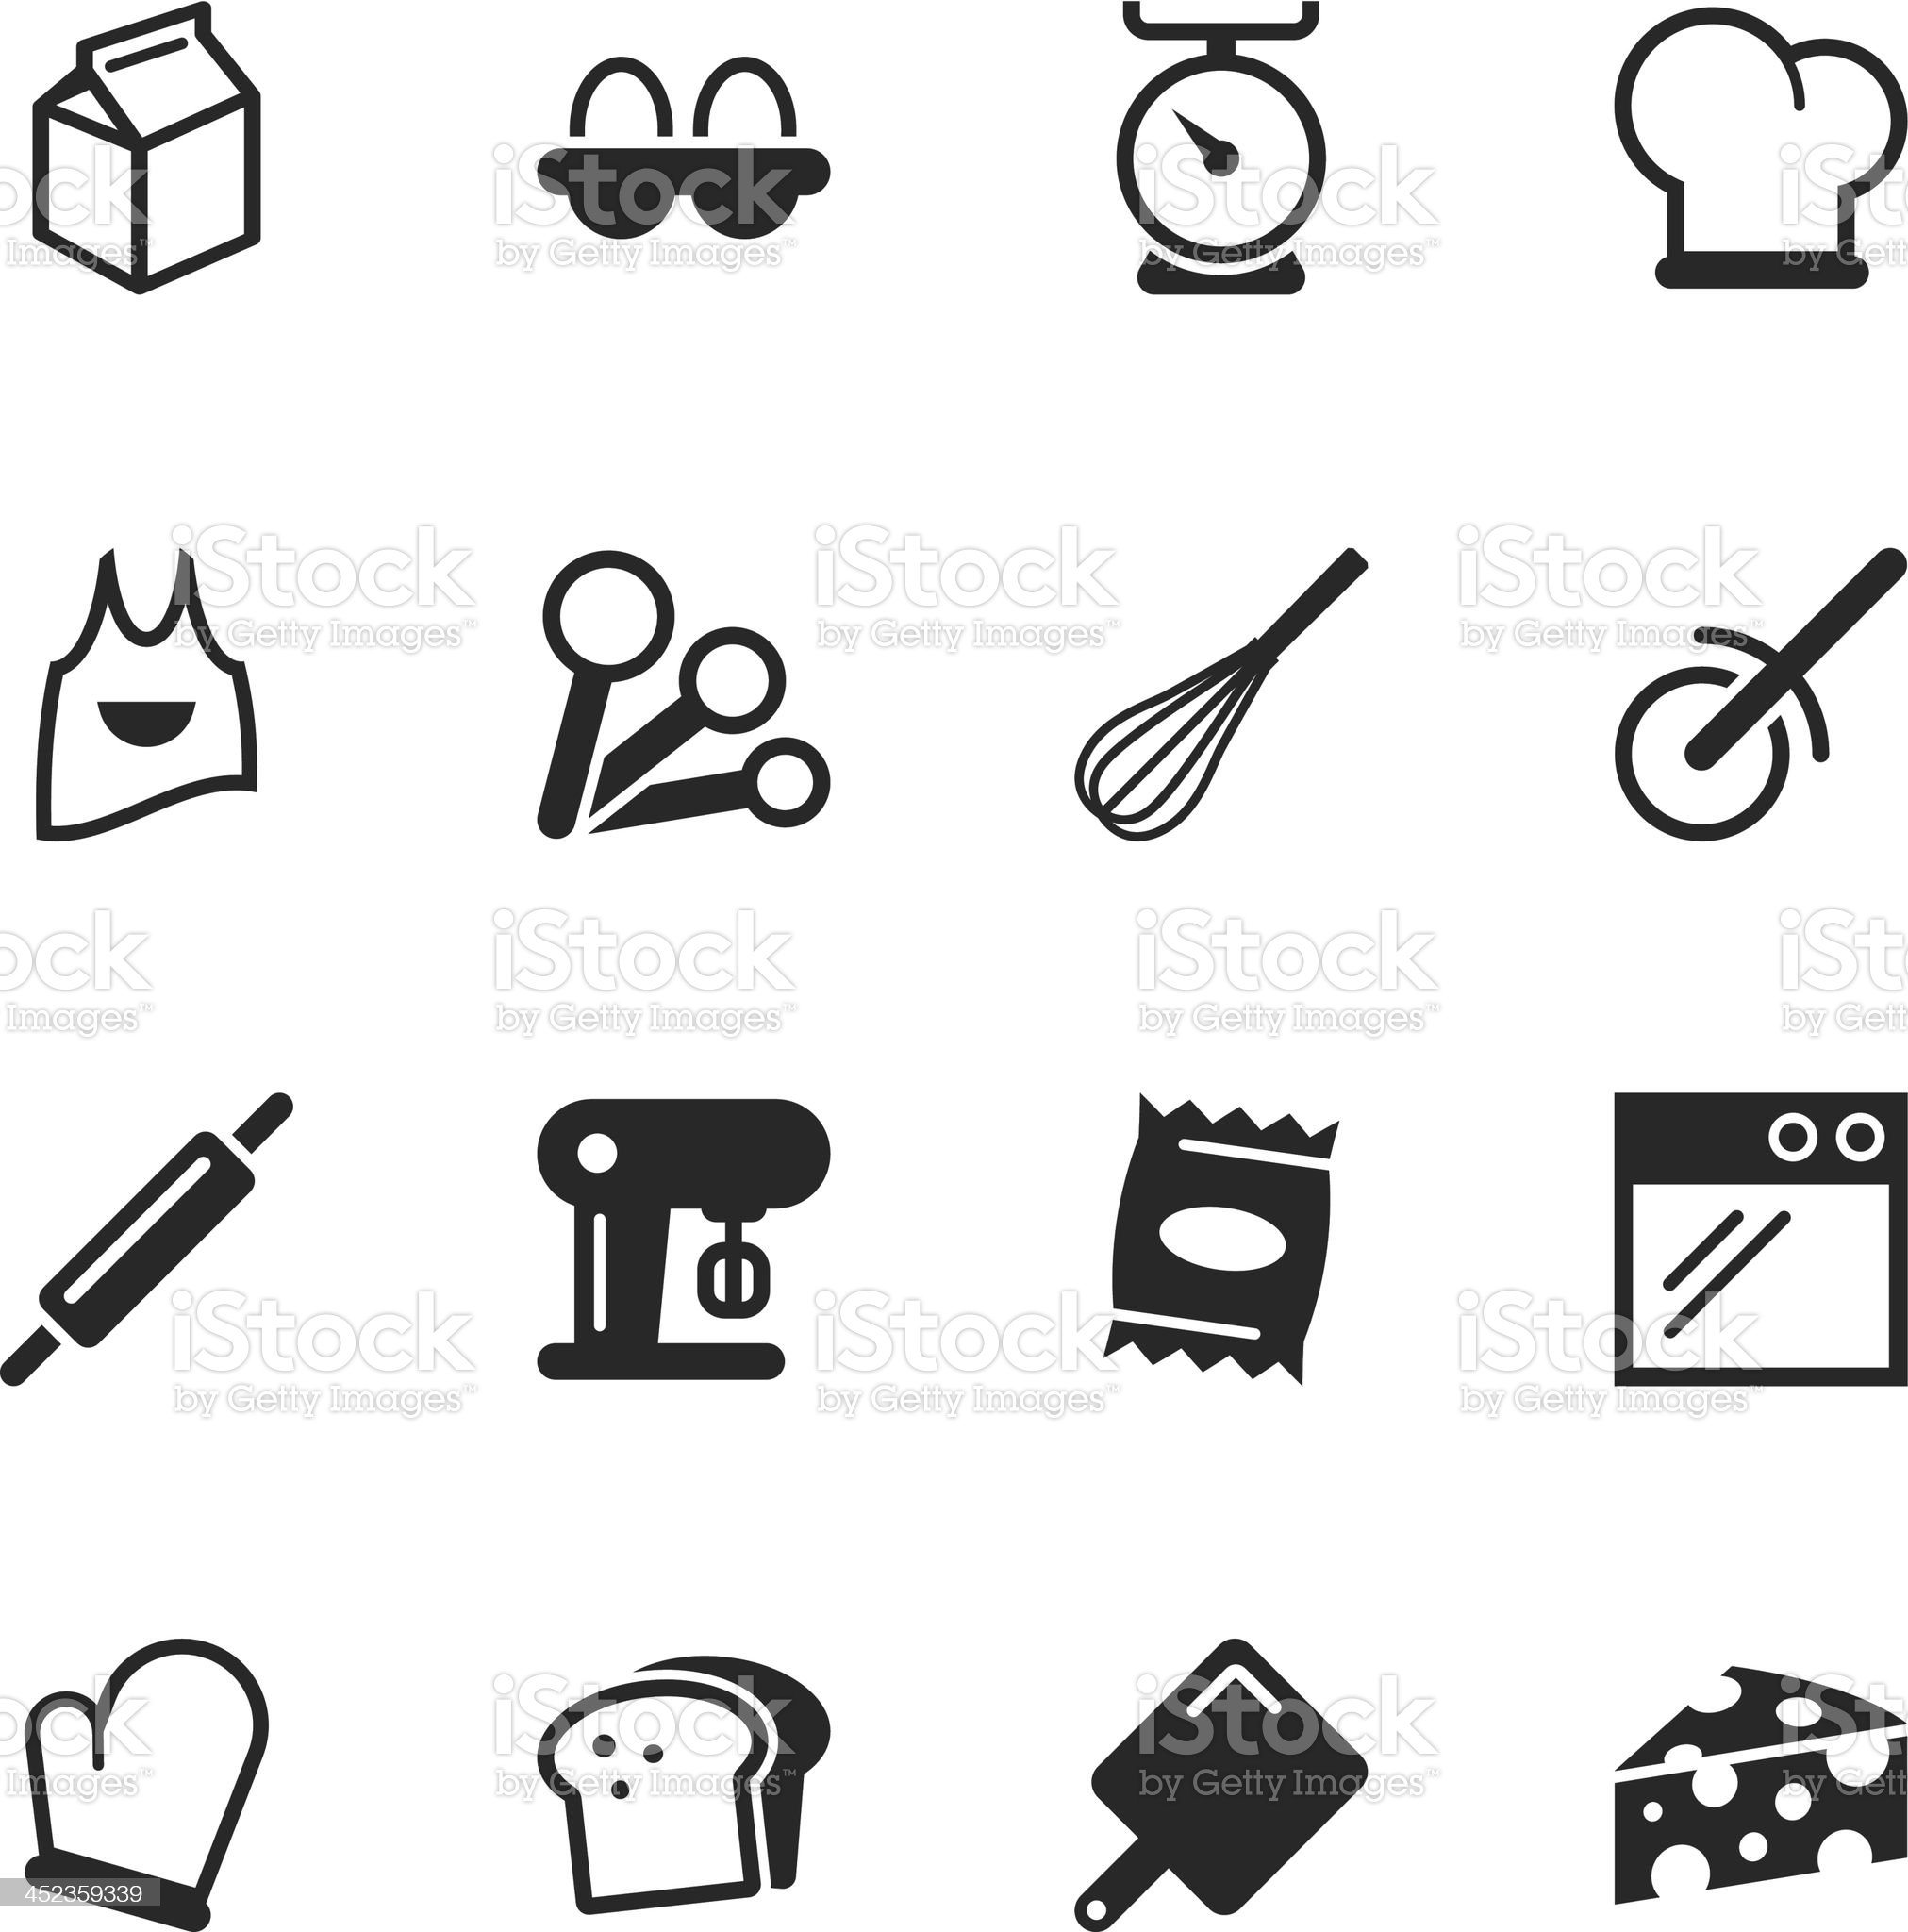 Baking Silhouette Icons royalty-free stock vector art